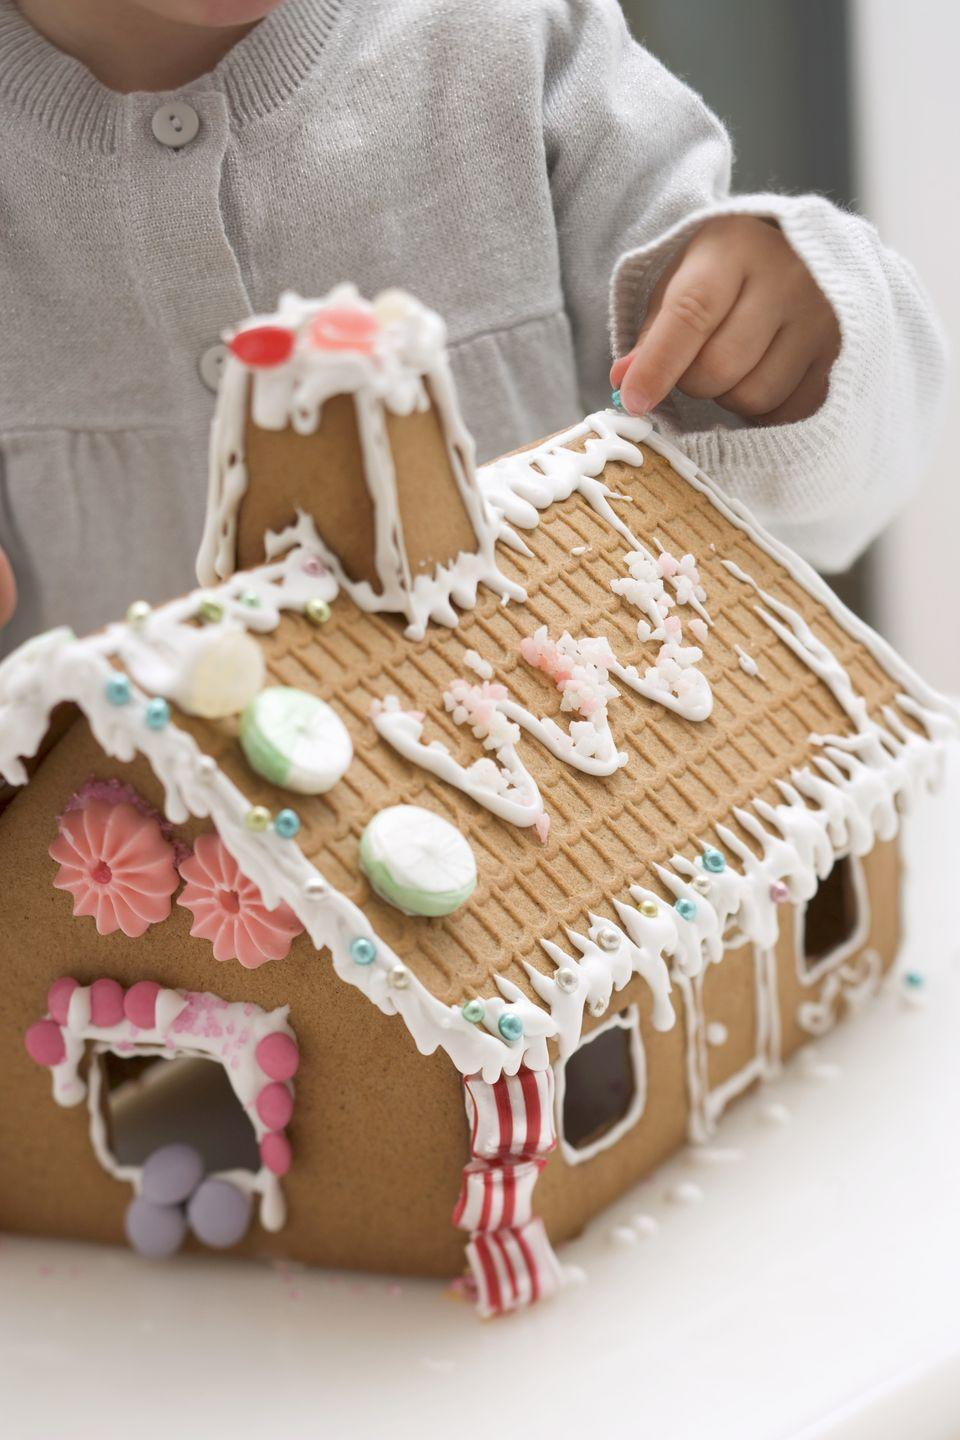 """<p>Baking <a href=""""https://www.countryliving.com/food-drinks/g1036/easy-christmas-desserts/"""" rel=""""nofollow noopener"""" target=""""_blank"""" data-ylk=""""slk:Christmas desserts"""" class=""""link rapid-noclick-resp"""">Christmas desserts</a> is always a fun activity, but after you're done making cookies, there's something else you can create—a gingerbread house! Either grab a kit or make a DIY gingerbread house for this fun activity.</p><p><a class=""""link rapid-noclick-resp"""" href=""""https://www.amazon.com/Fox-Run-Christmas-Gingerbread-Stainless/dp/B07WPWZ16X/ref=sr_1_6?dchild=1&keywords=gingerbread+house+kit&qid=1632338688&sr=8-6&tag=syn-yahoo-20&ascsubtag=%5Bartid%7C10050.g.25411840%5Bsrc%7Cyahoo-us"""" rel=""""nofollow noopener"""" target=""""_blank"""" data-ylk=""""slk:SHOP GINGERBREAD HOUSE KITS"""">SHOP GINGERBREAD HOUSE KITS</a></p>"""